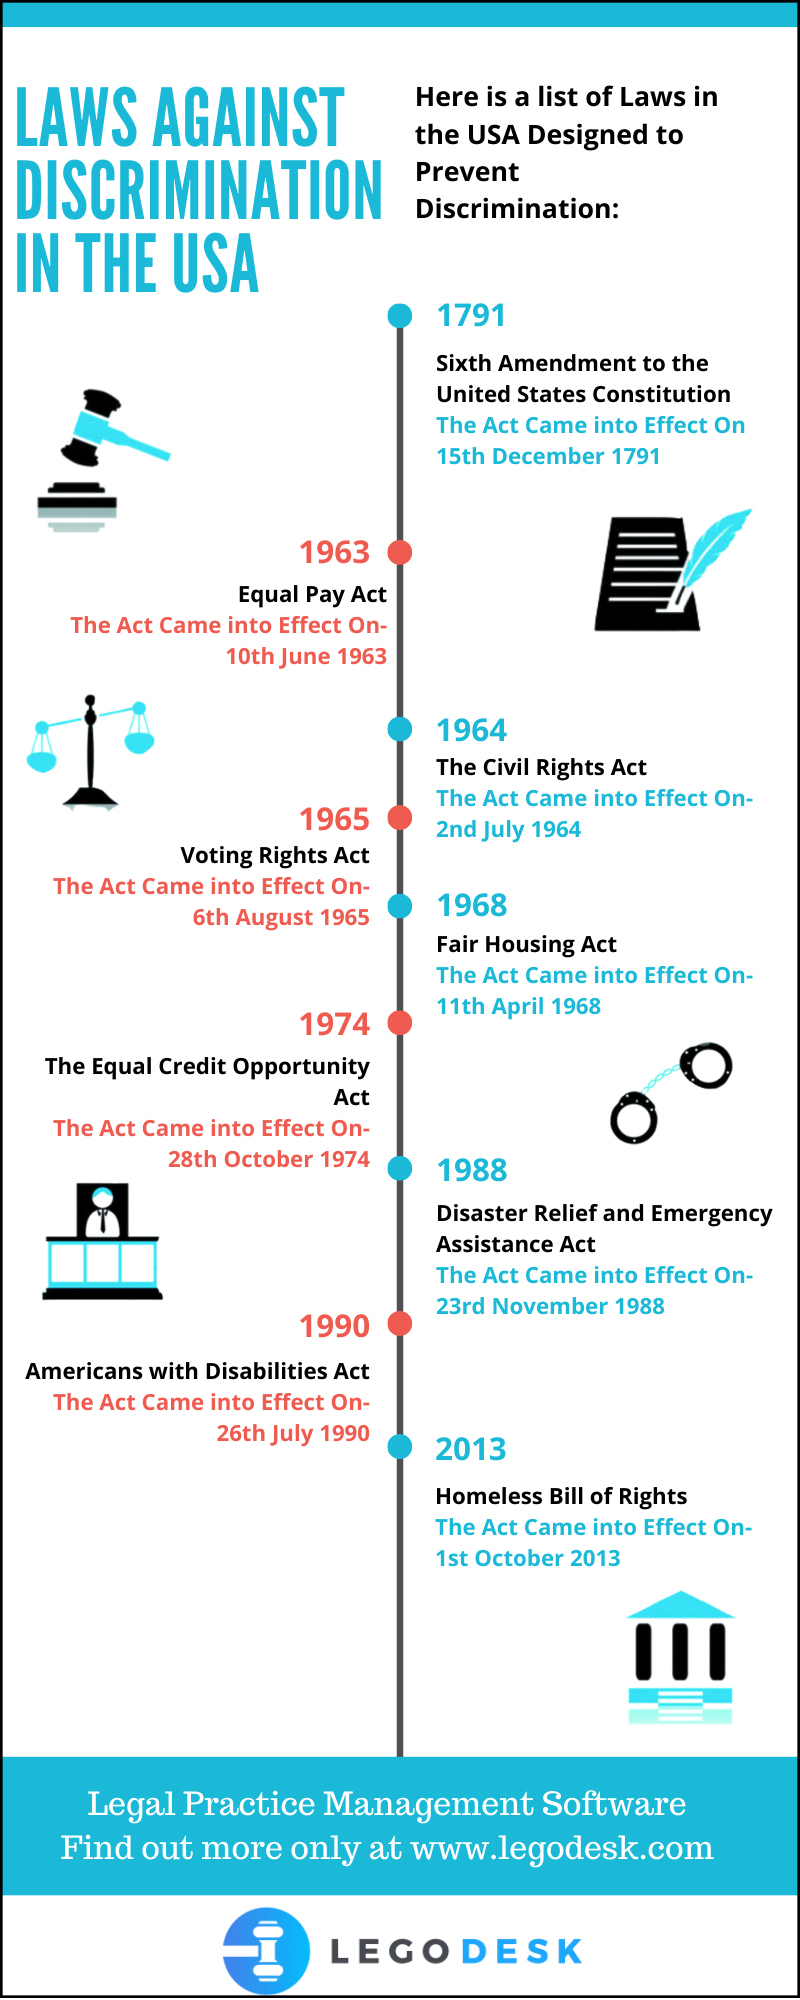 Laws against discrimination in the USA